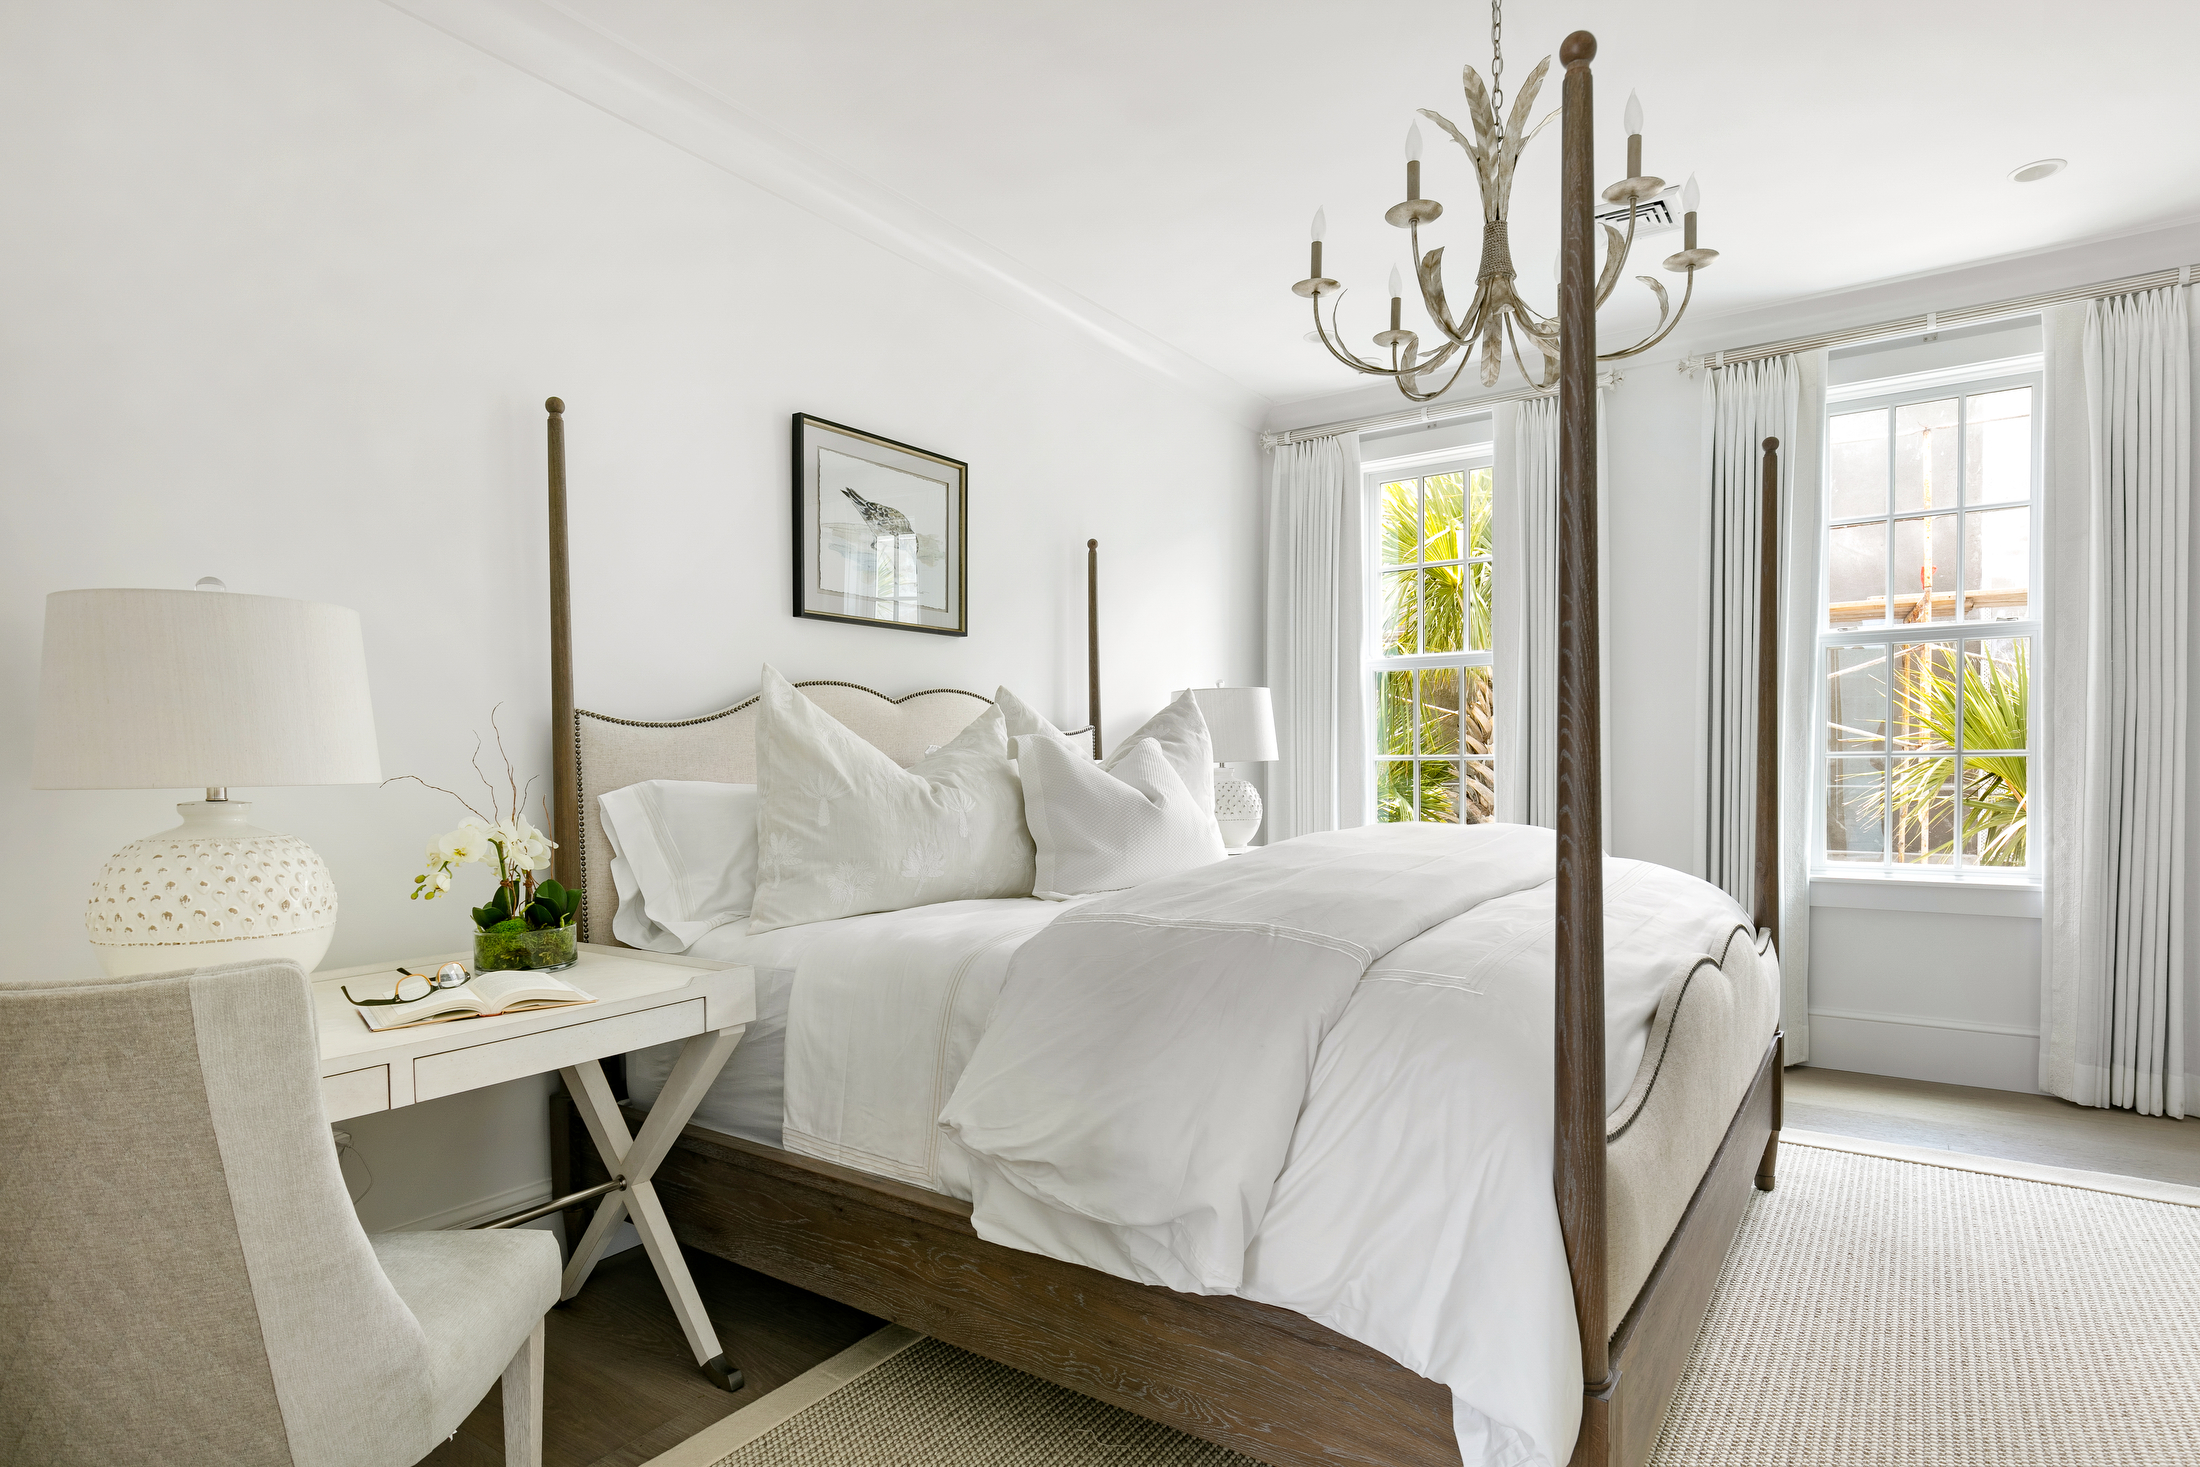 Guest bedroom in neutral tones